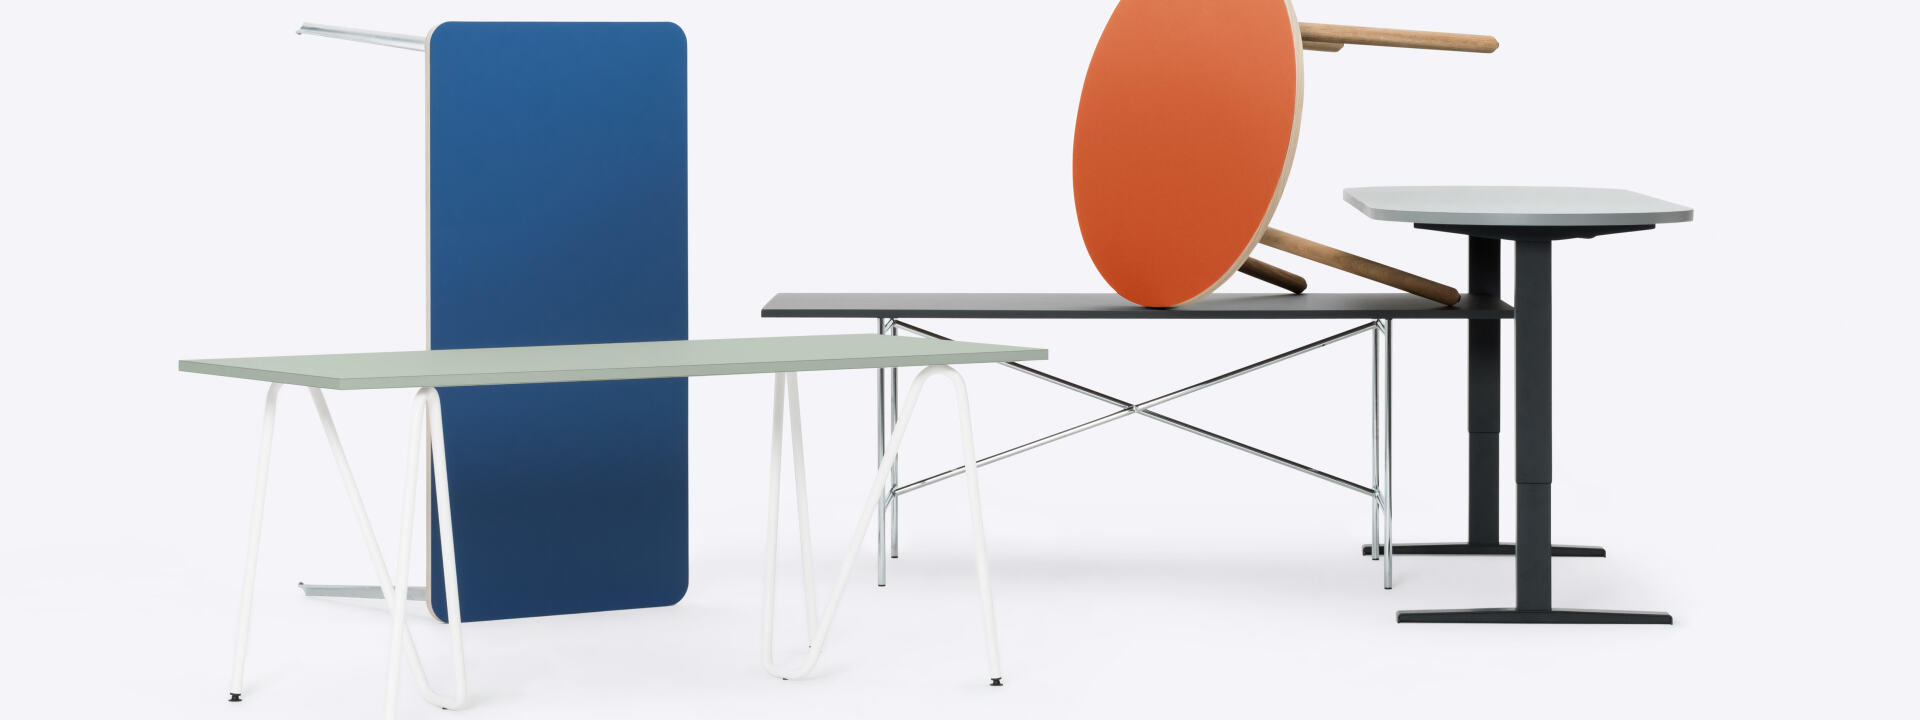 Home, Tabletops, Tables, Table Frames, Shelving System, Seating Systems, Office & Home, Accessories